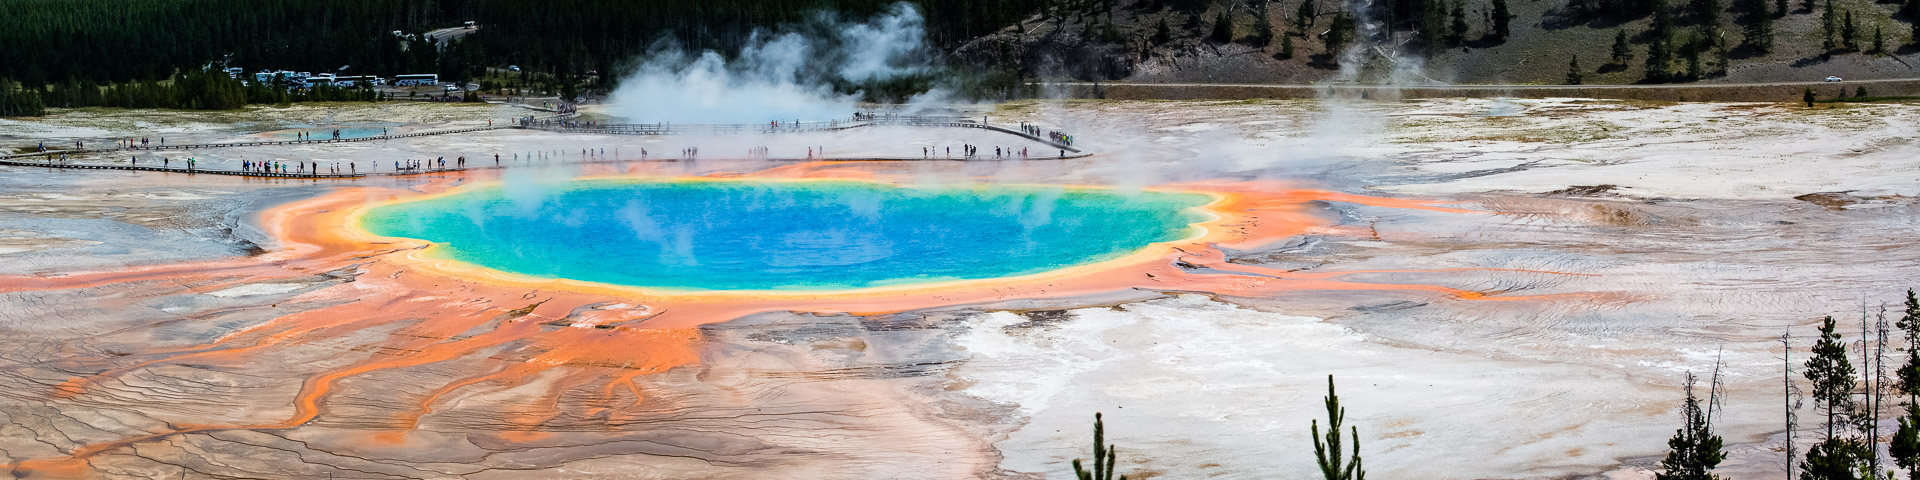 21.7. Midway Geyser Basin - Grand Prismatic Spring, vom Overlook aus.